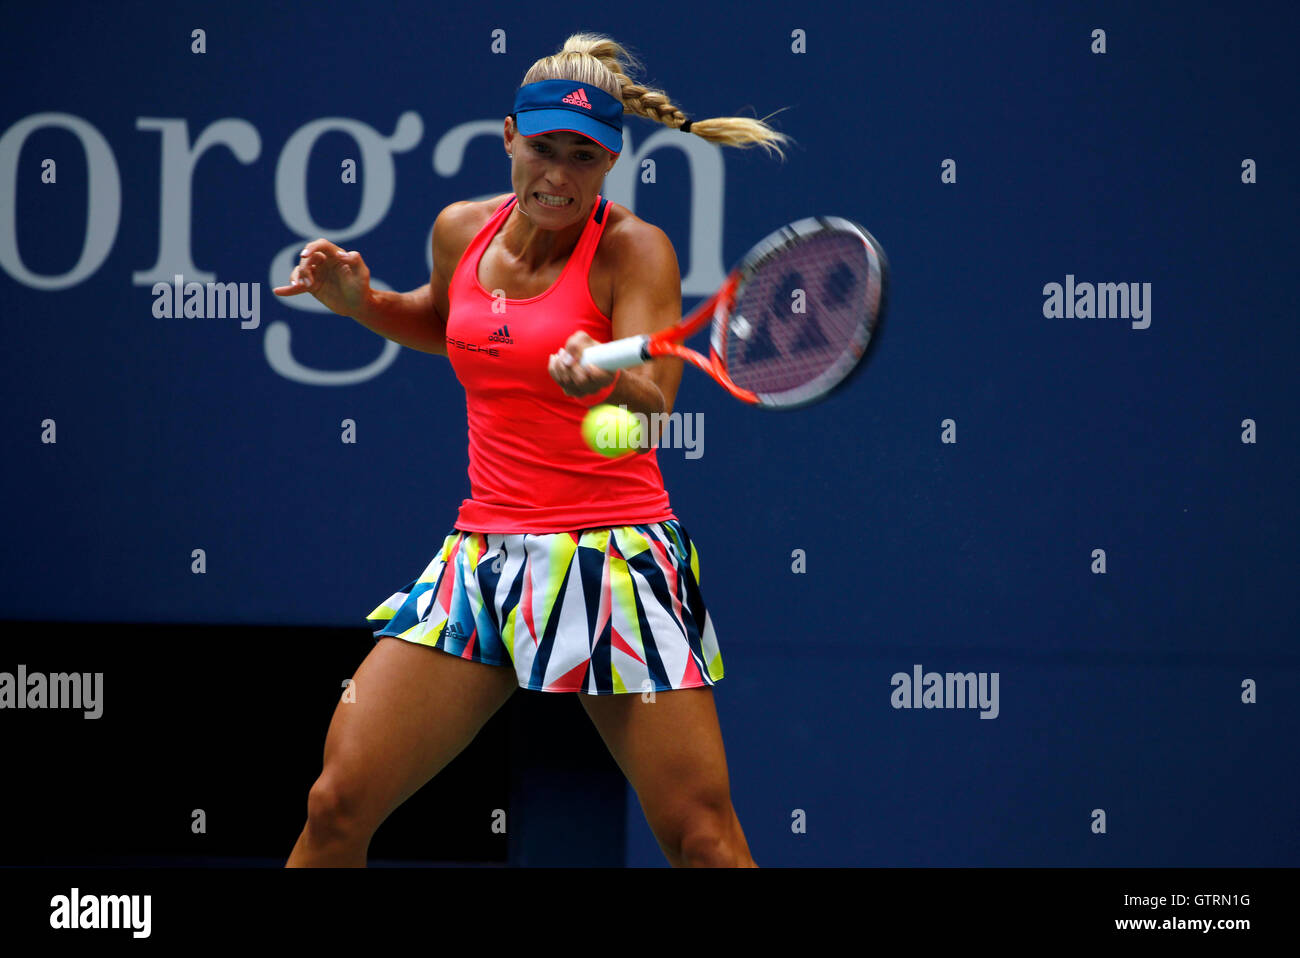 New York, USA. 10th September, 2016. Number 2 seed, Angelique Kerber of Germany in action against Karolina Pliskova - Stock Image